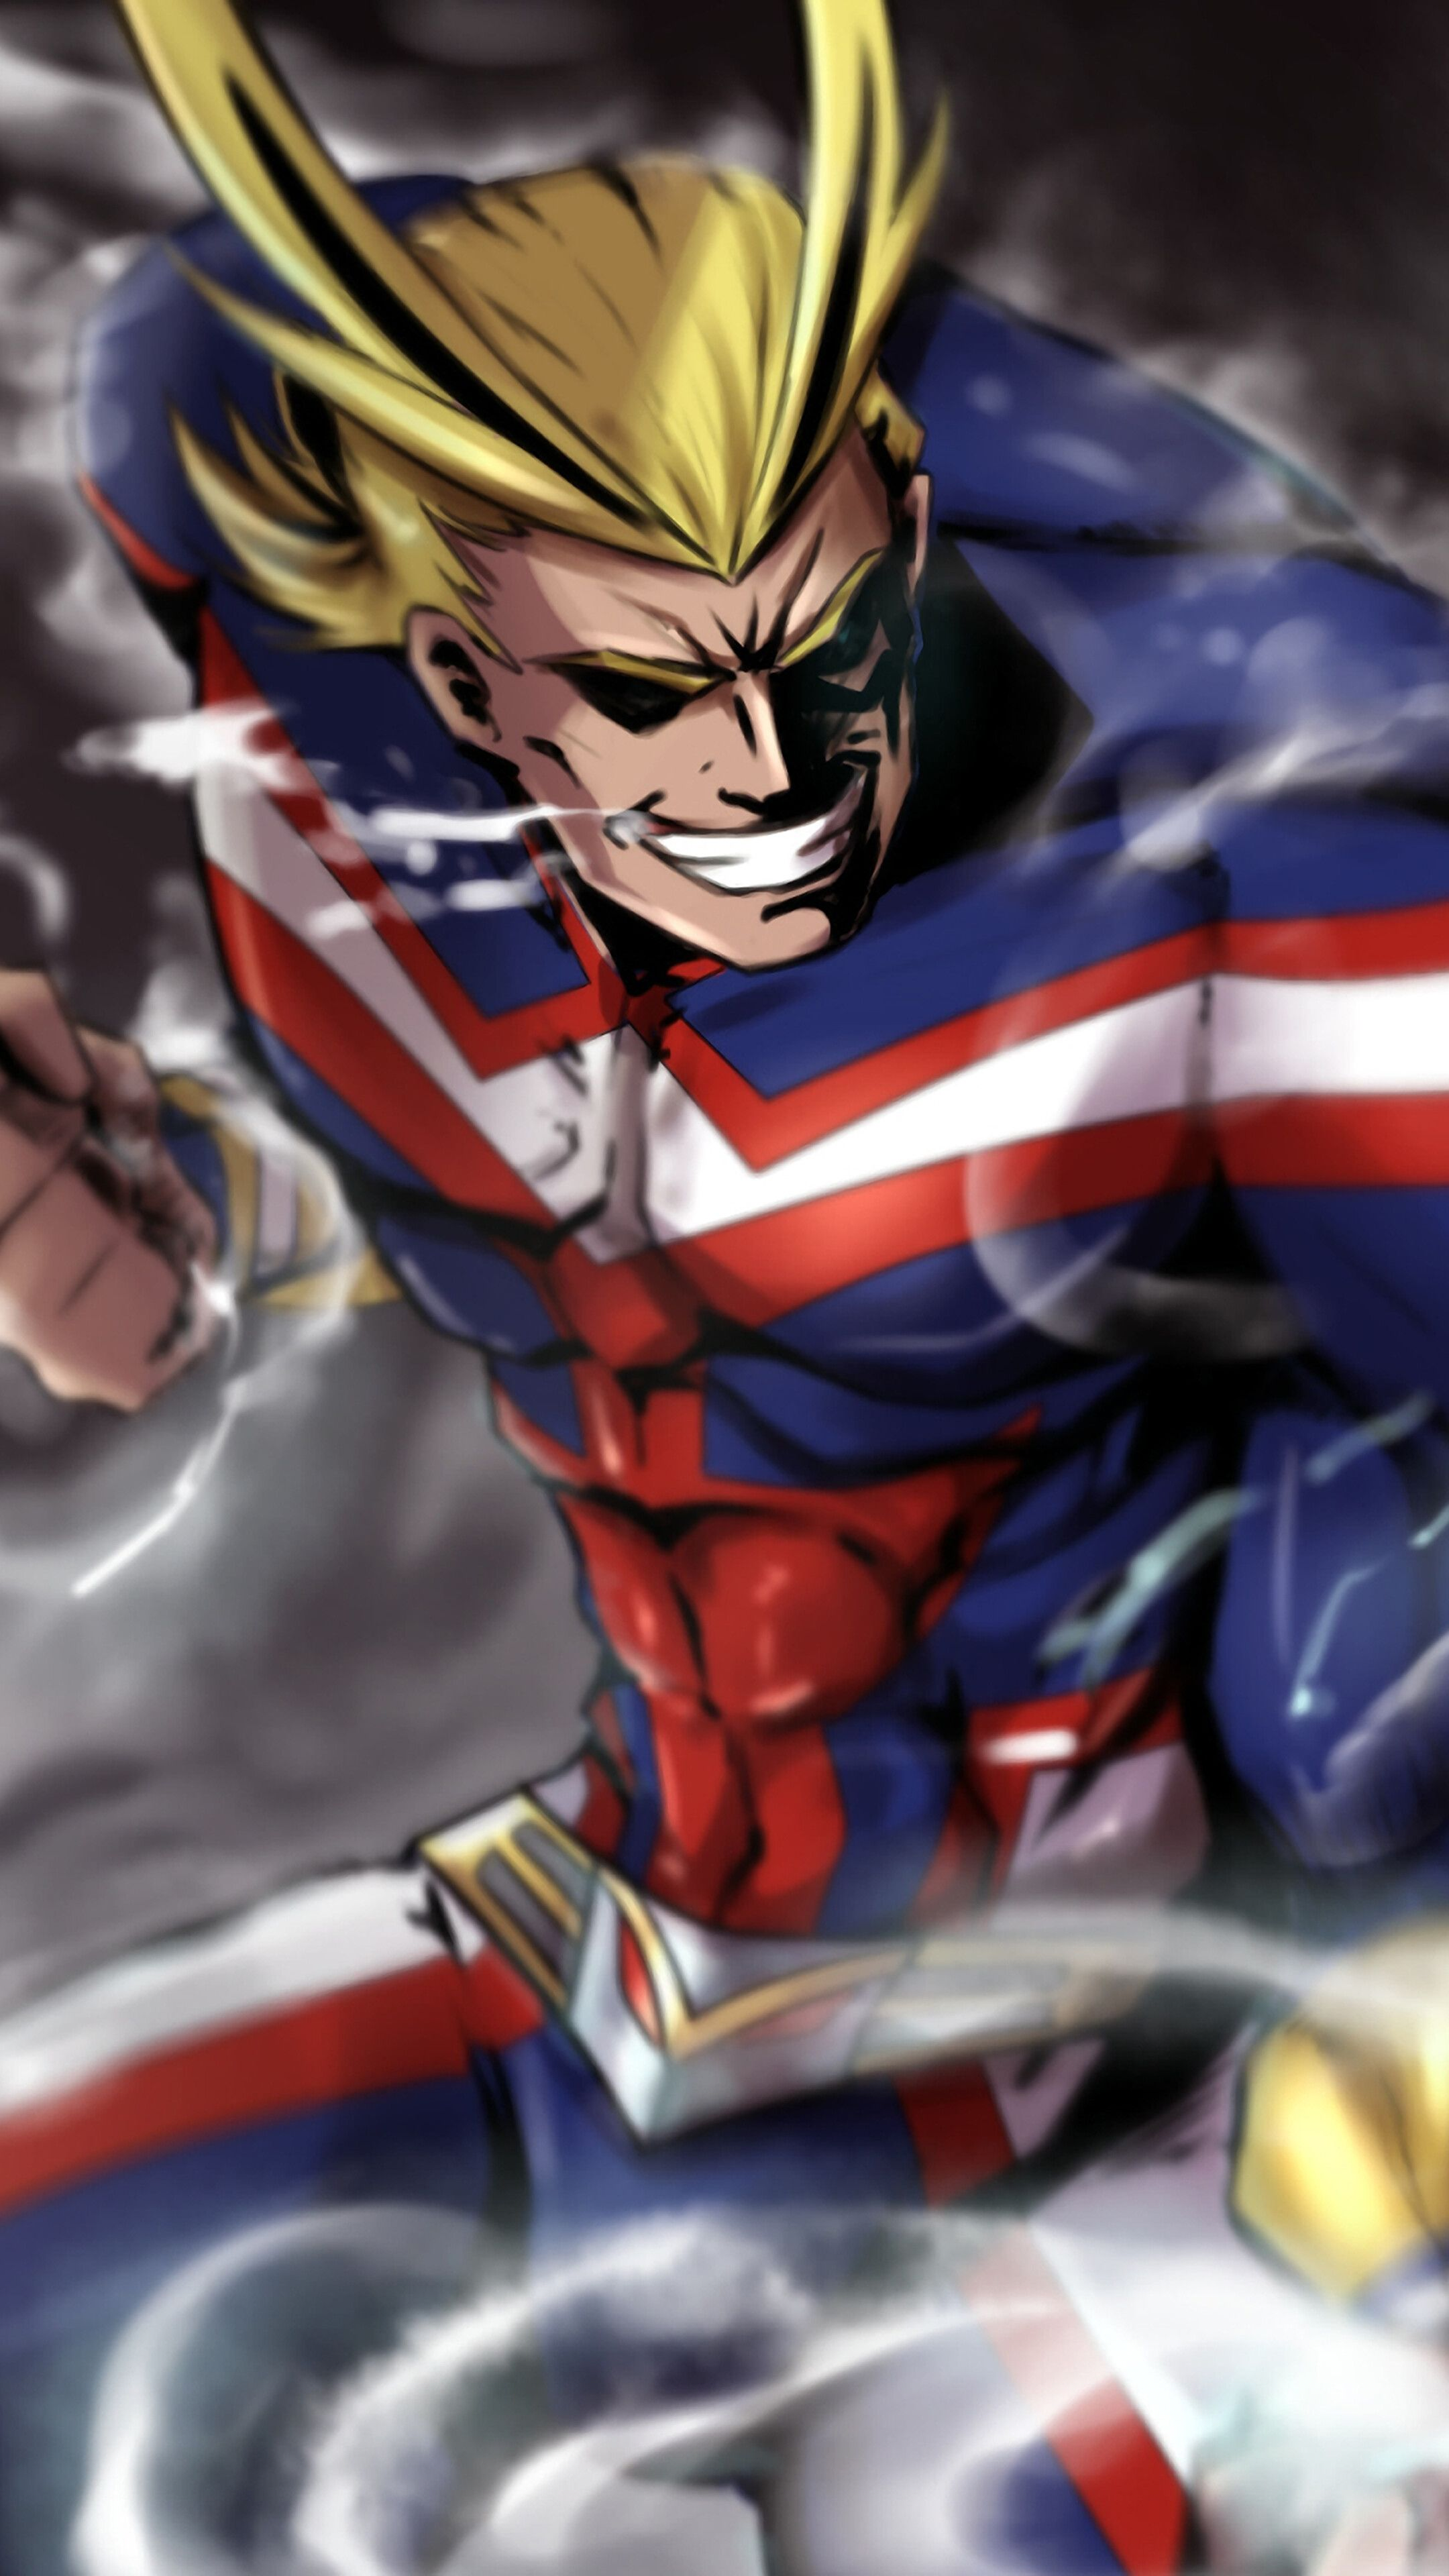 328536 All Might, My Hero Academia, 4K Iphone 10,7,6s,6 HD Wallpapers, Image, Backgrounds, Photos and Pictures